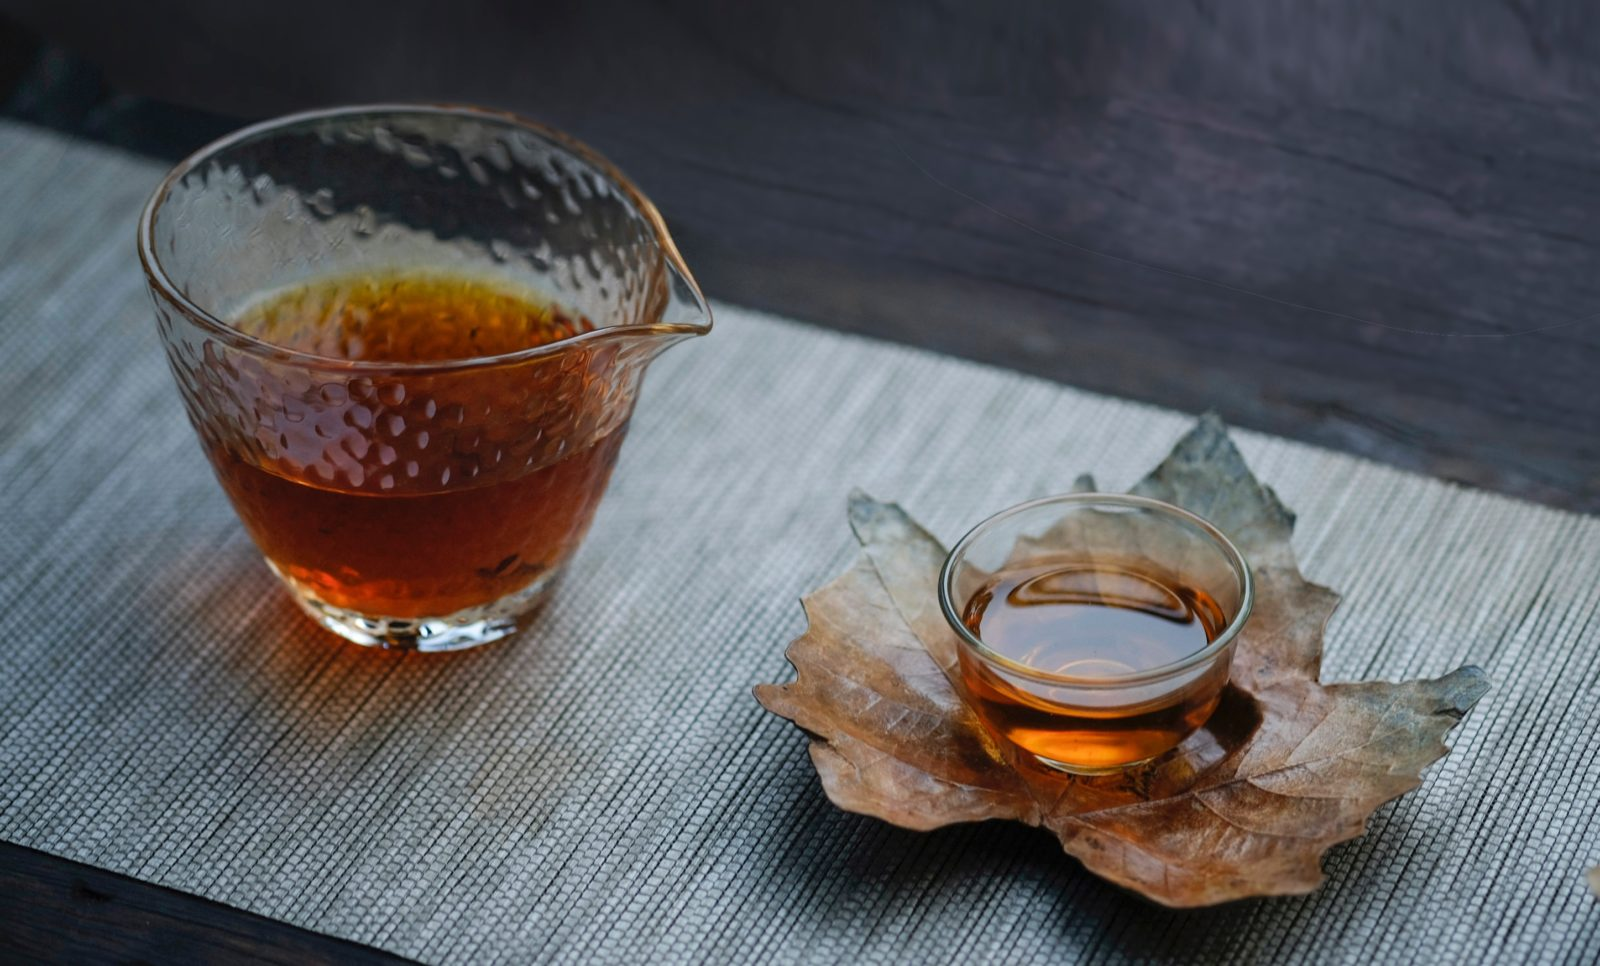 A cup of Chinese tea beside a ceramic leaf with another cup of tea resting on it.